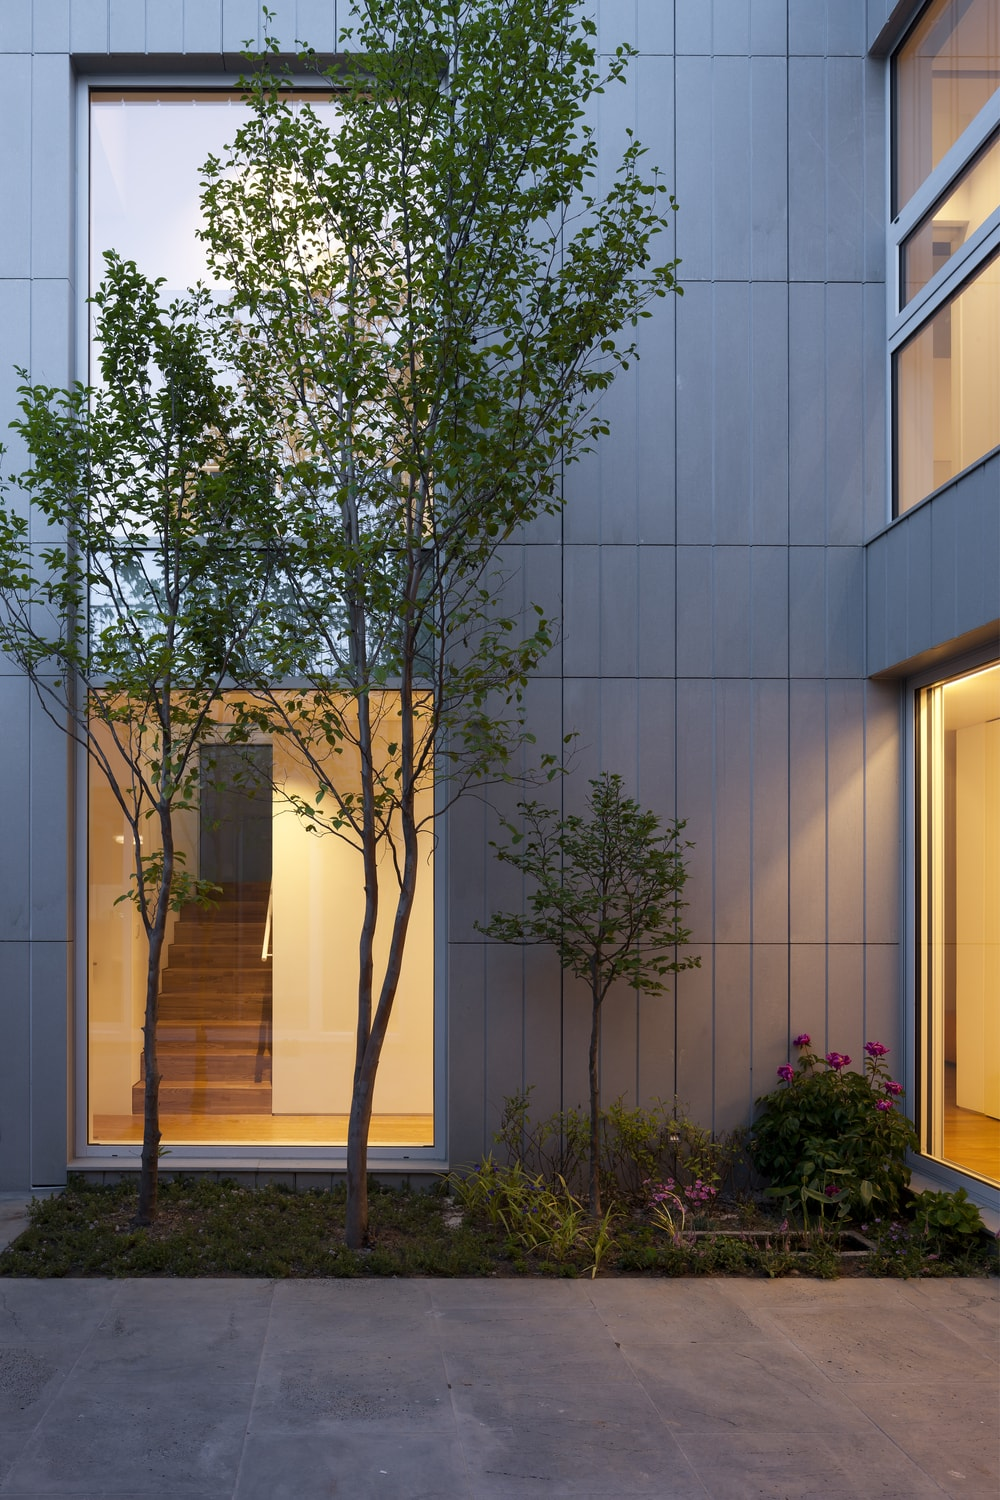 One glass wall showcases the staircase adorned with trees and flowering shrubs just outside the glass wall.